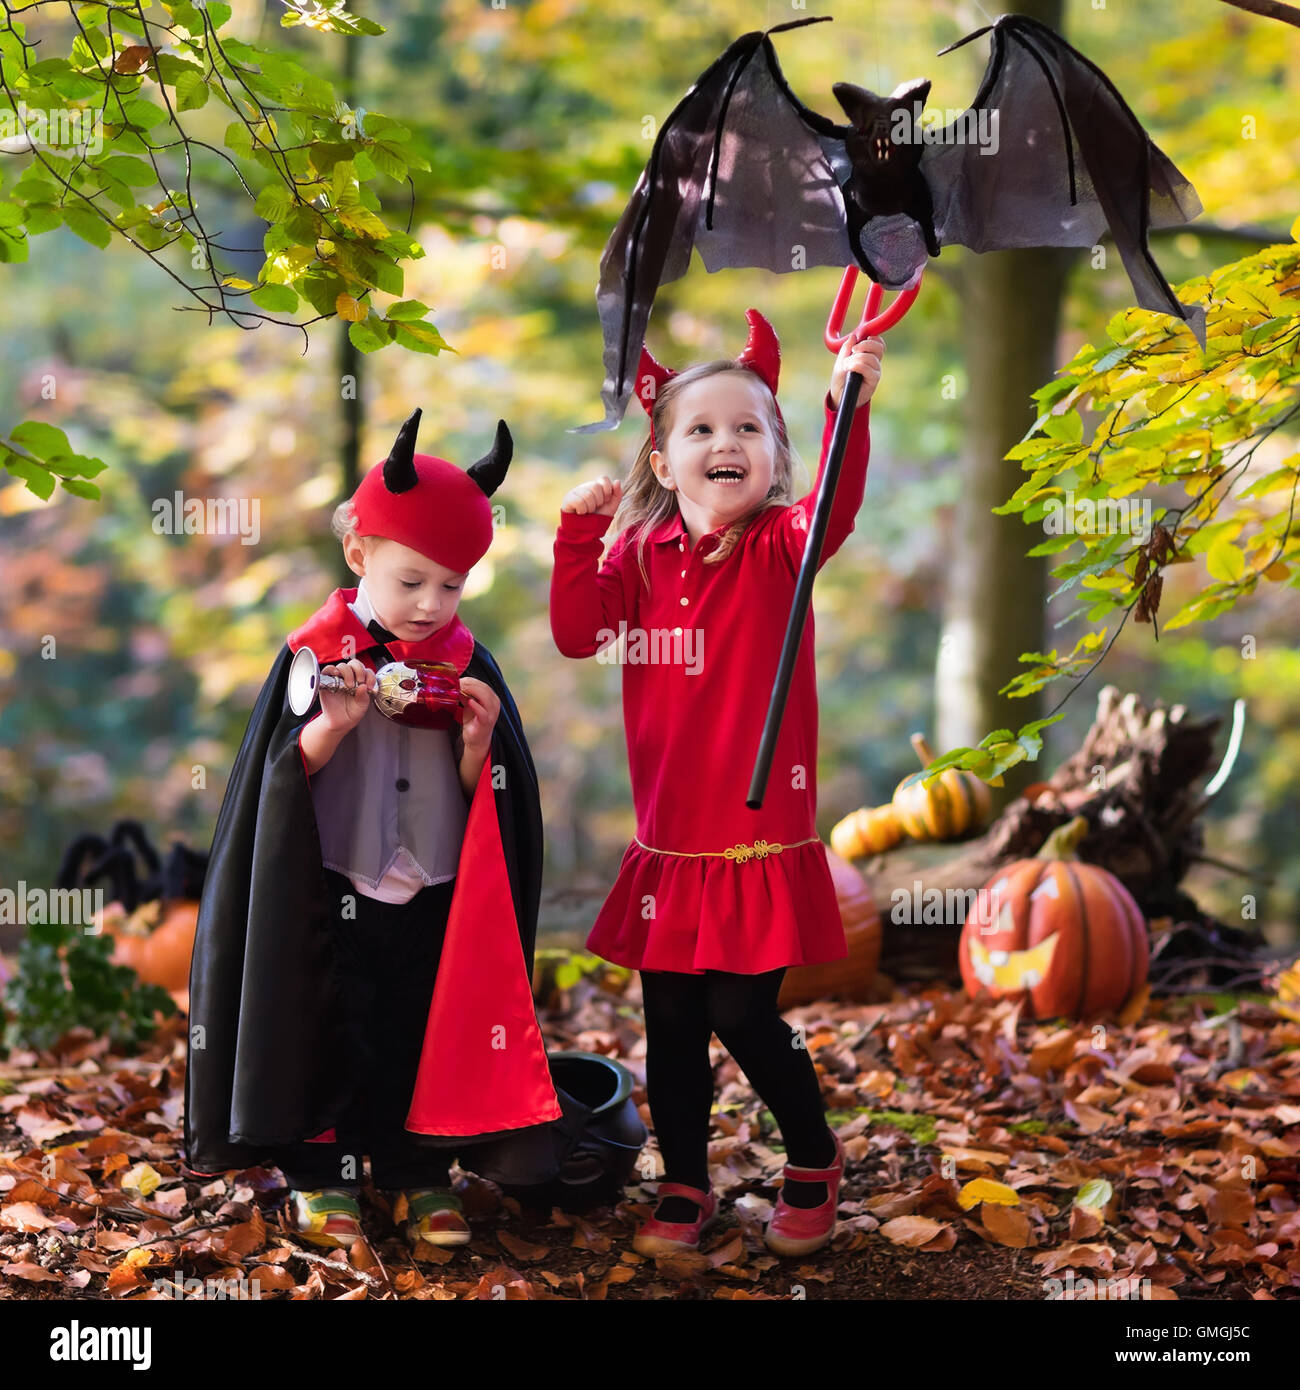 Funny Kids Halloween Costumes.Two Funny Kids Wearing Devil And Vampire Costume With Red